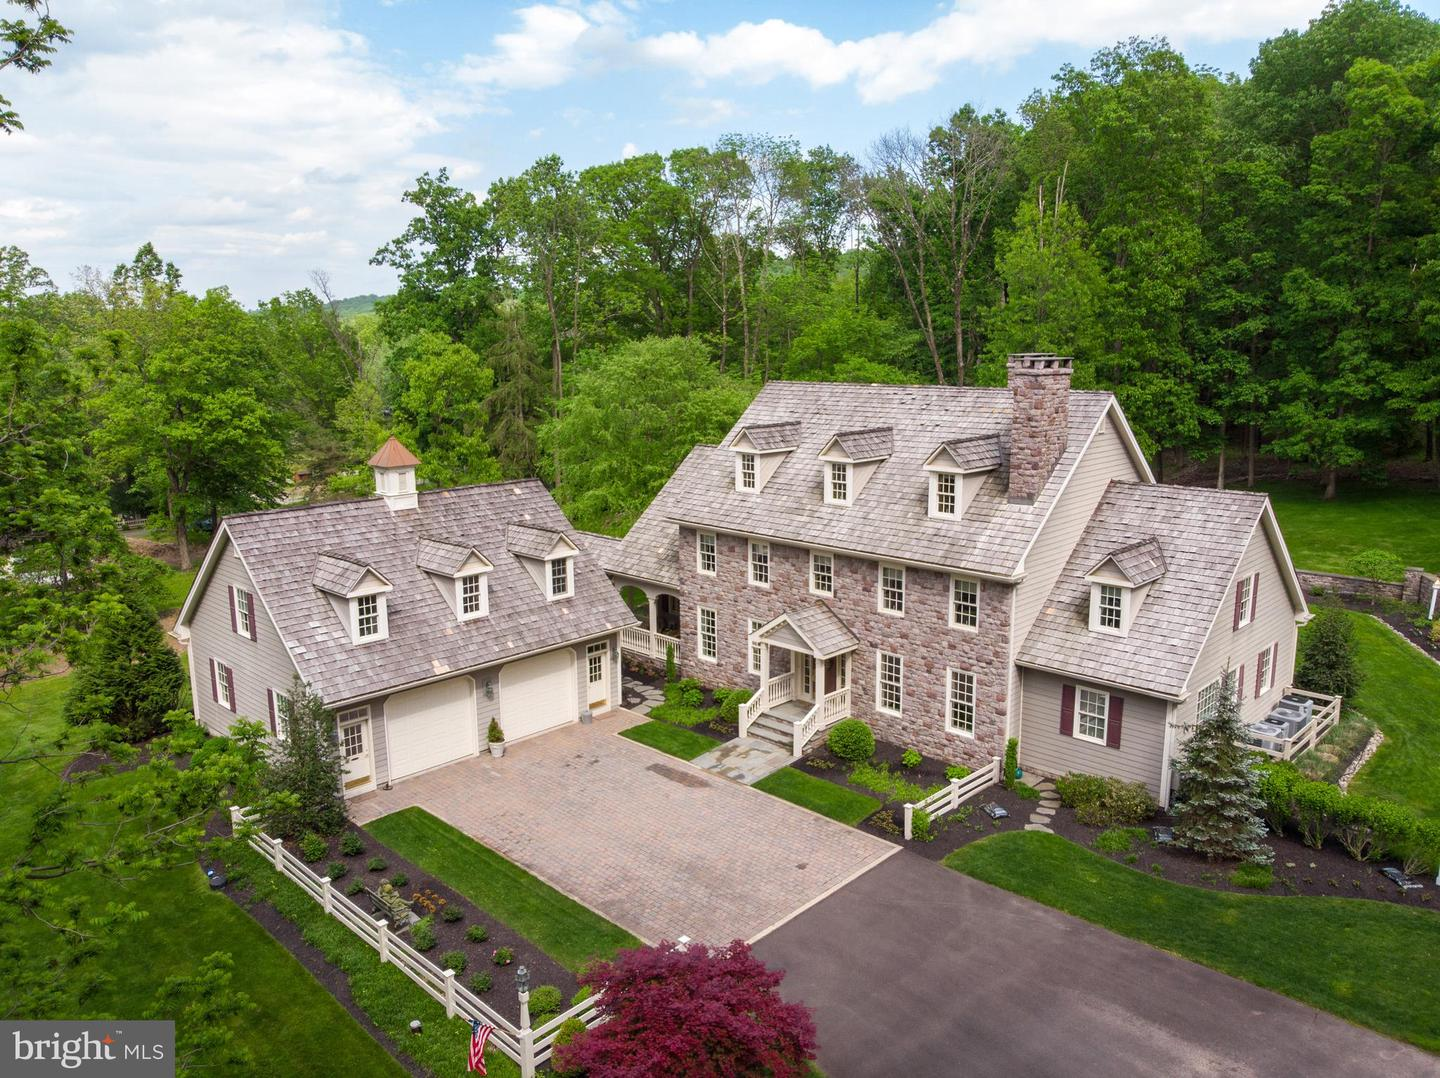 278 THOMPSON MILL RD, NEW HOPE, PA